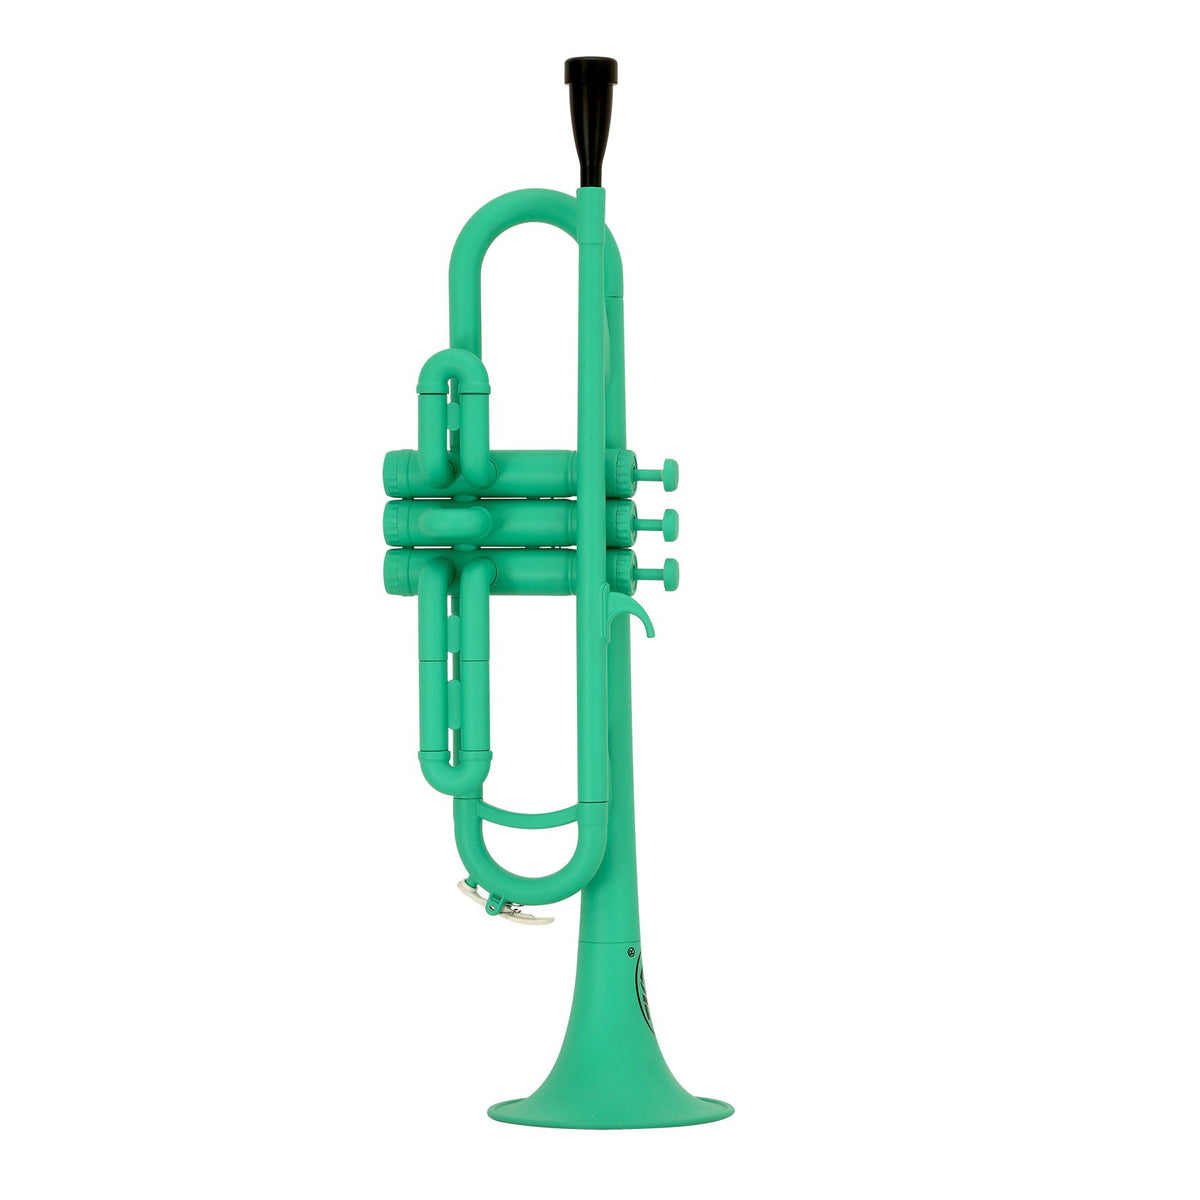 ZO - ABS Bb Trumpets-Trombone-ZO-Green-Music Elements